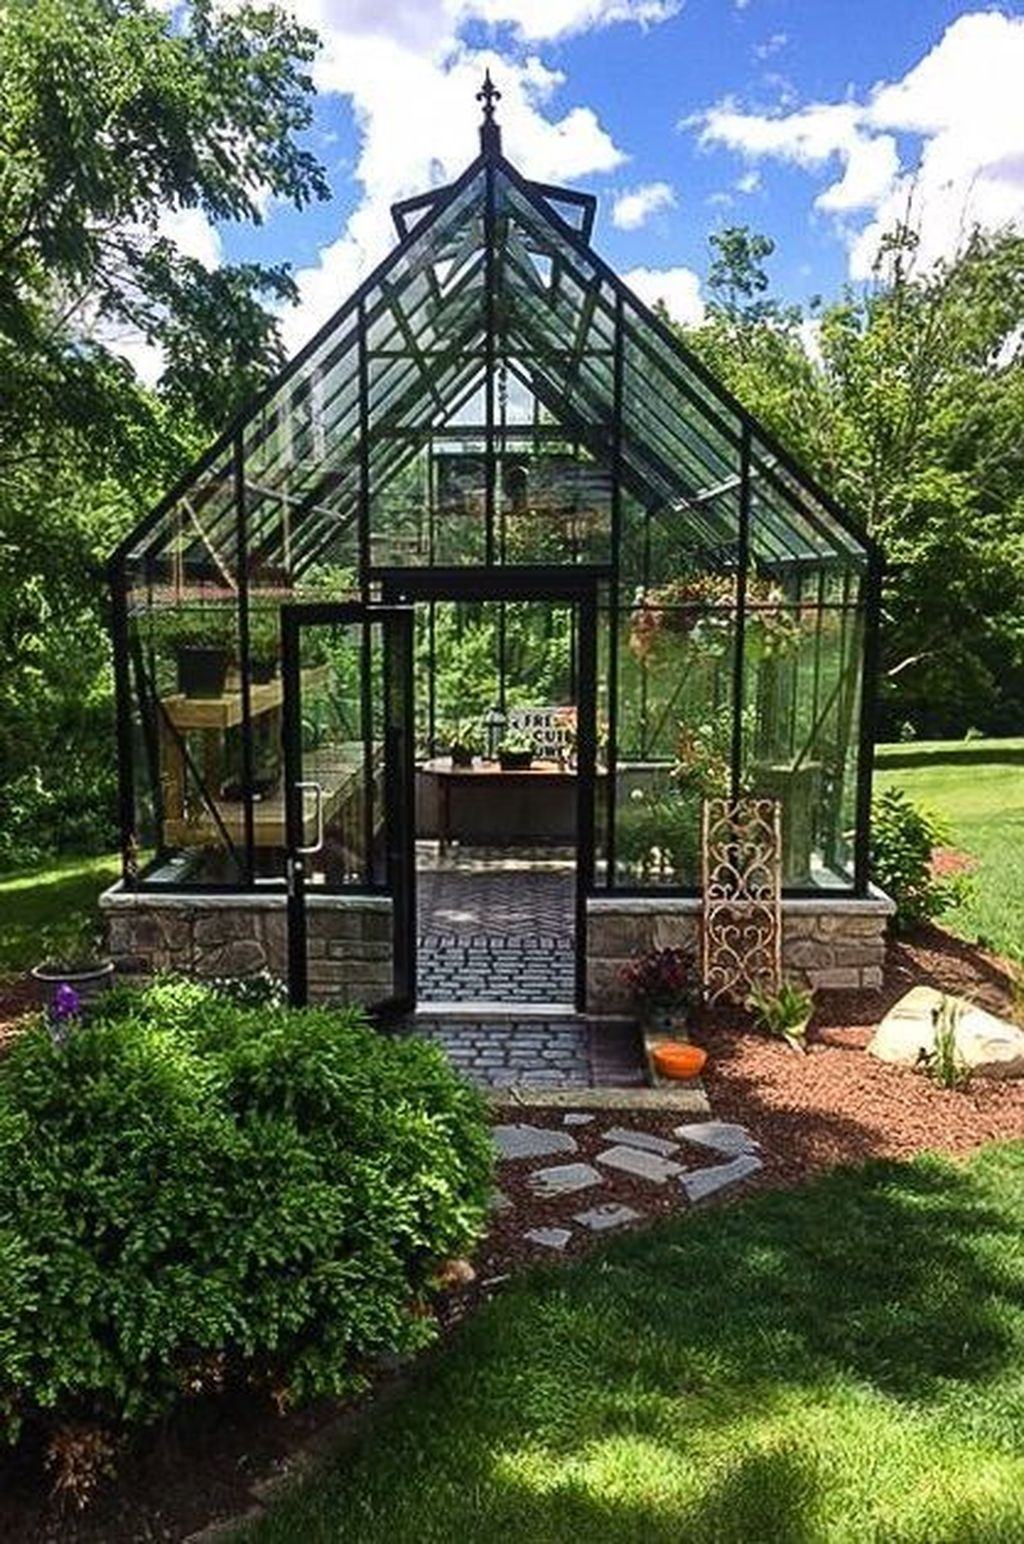 35 latest wooden greenhouse design ideas for home backyard on wow awesome backyard patio designs ideas for copy id=56820